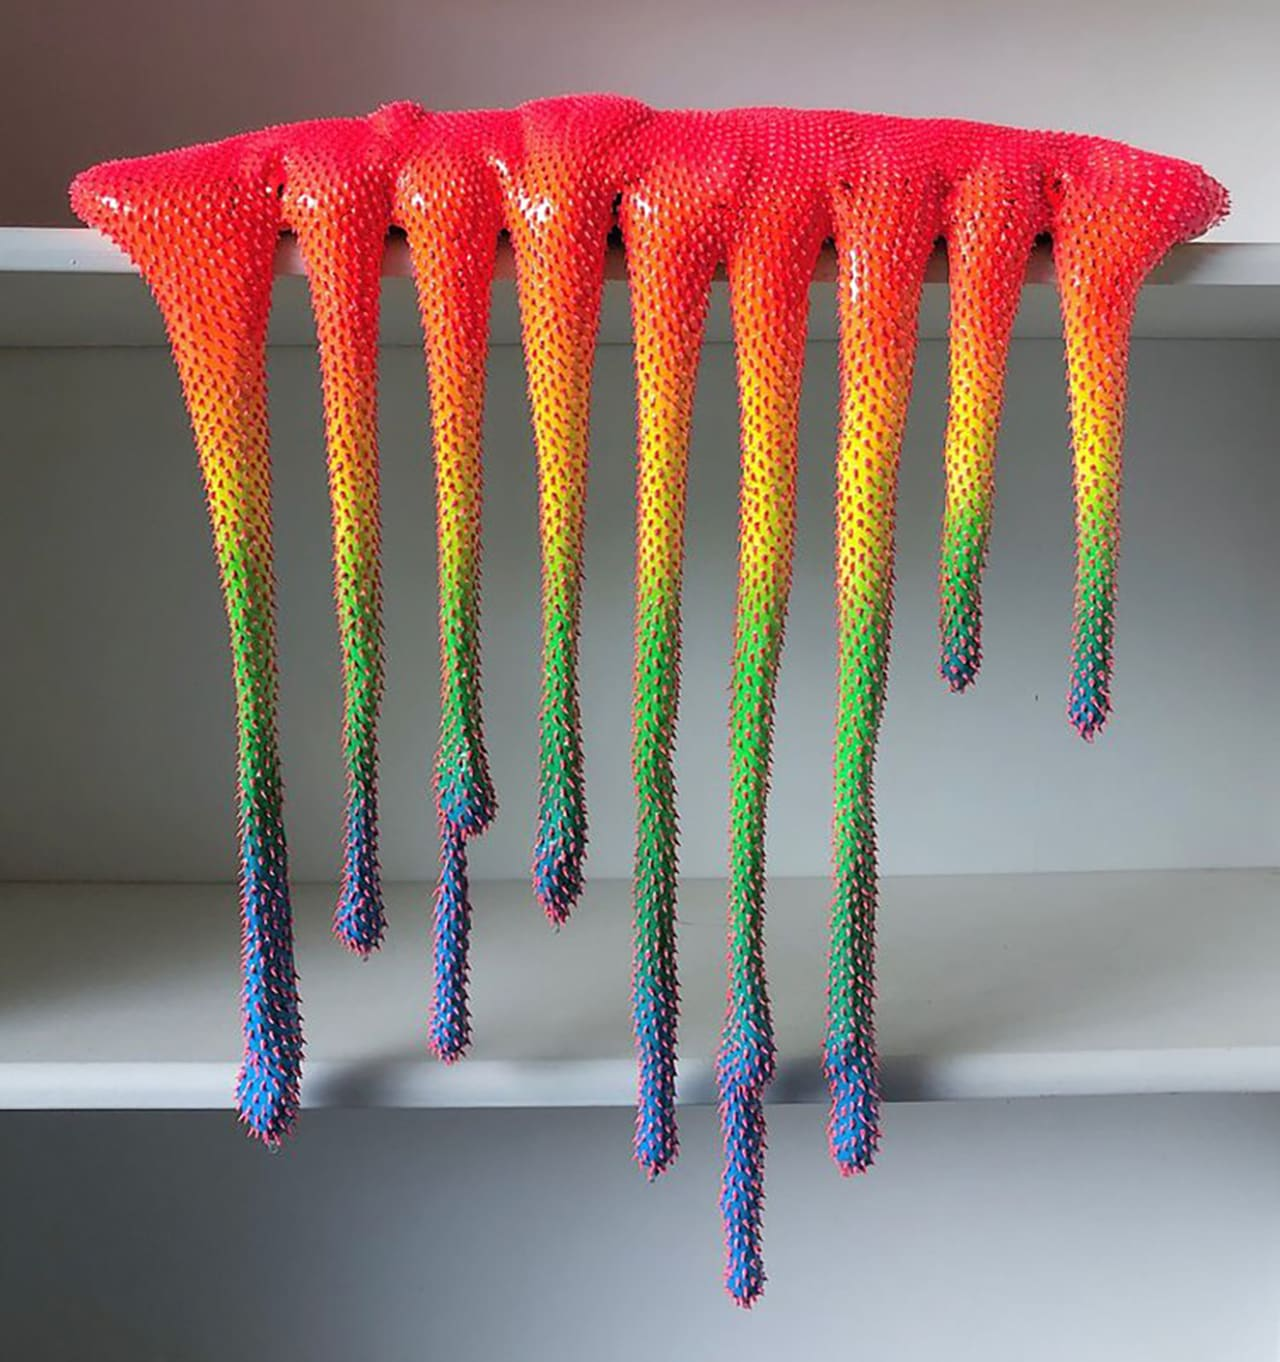 Innovative Sculptures by Dan Lam